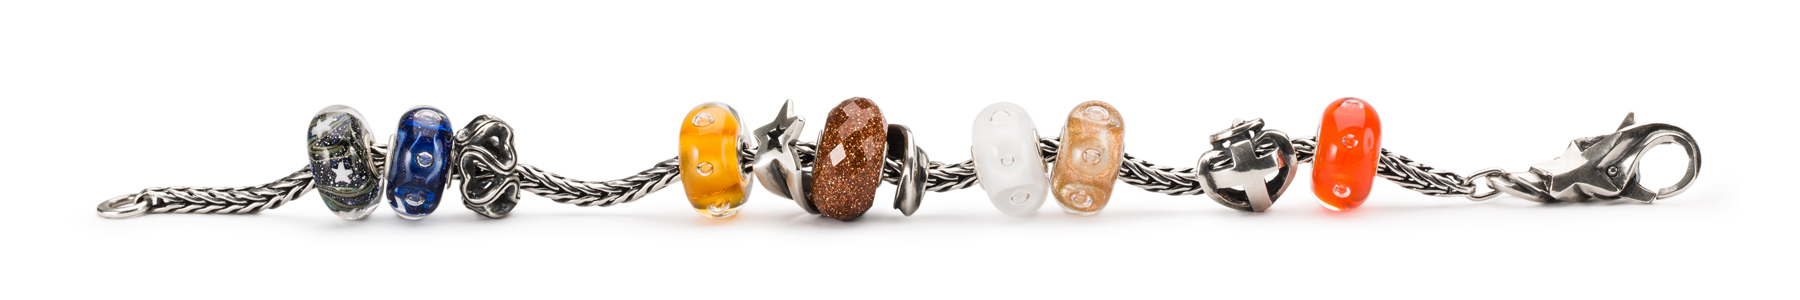 Silver bracelet adorned with the new beads from the Starlight collection